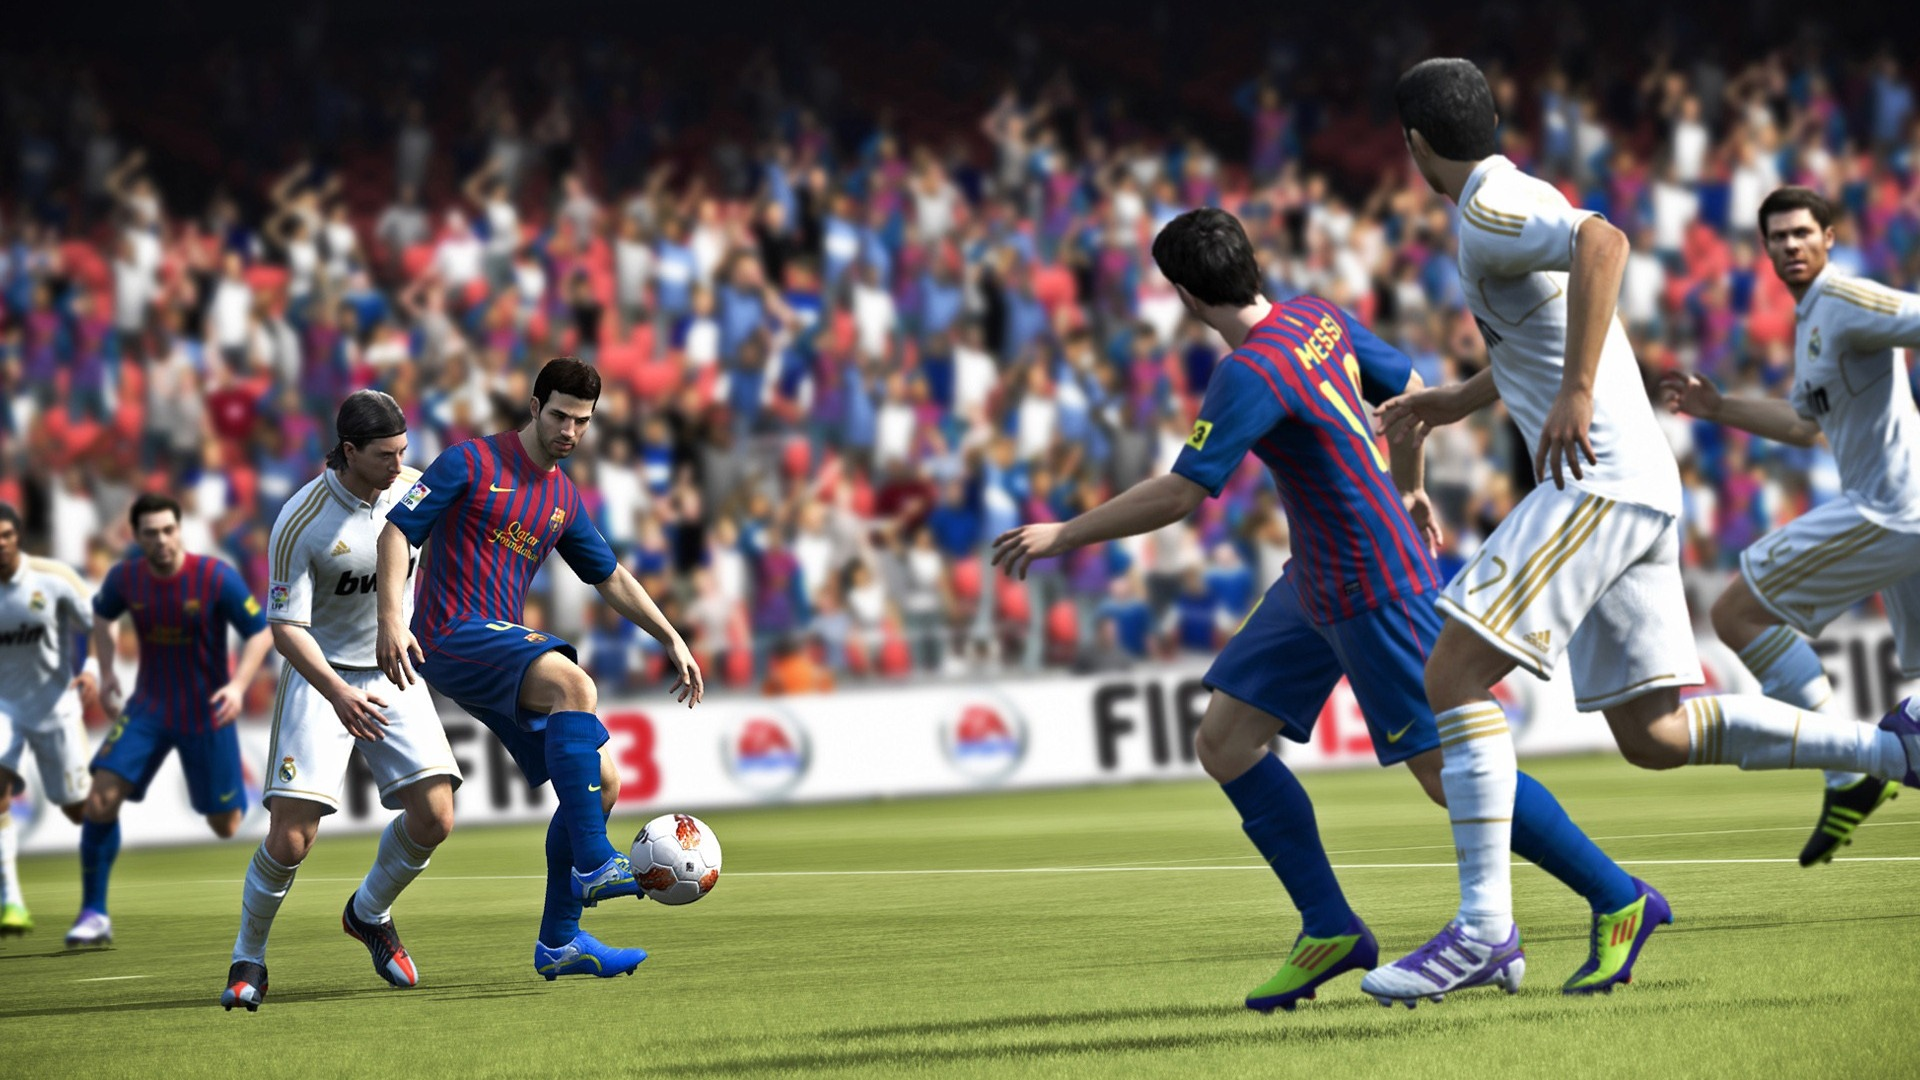 Fifa 13 game hd wallpaper 14 1920x1080 download 10wallpaper fifa 13 game hd wallpaper 14 1920x1080 wallpaper download voltagebd Image collections